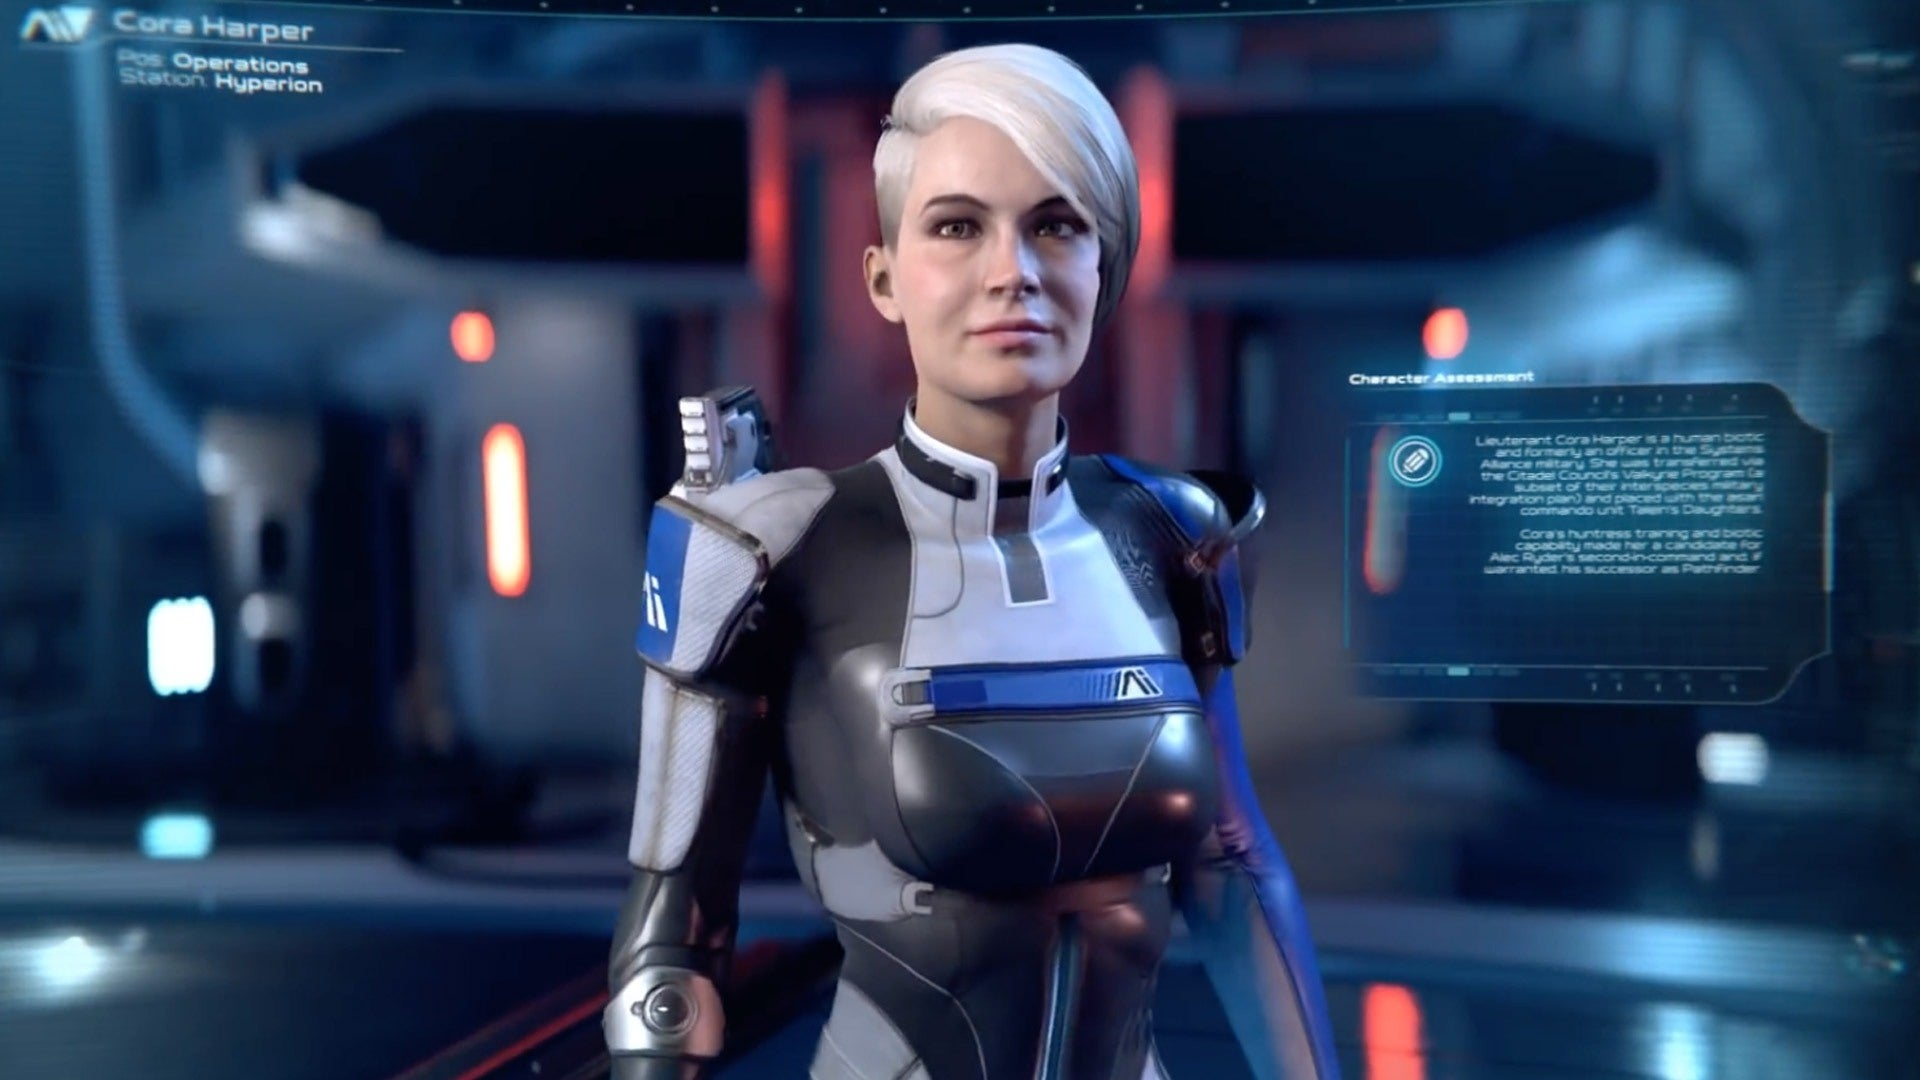 Mass Effect Andromeda Pathfinder Team Briefing Trailer Top Movie Trailers Top Video Game